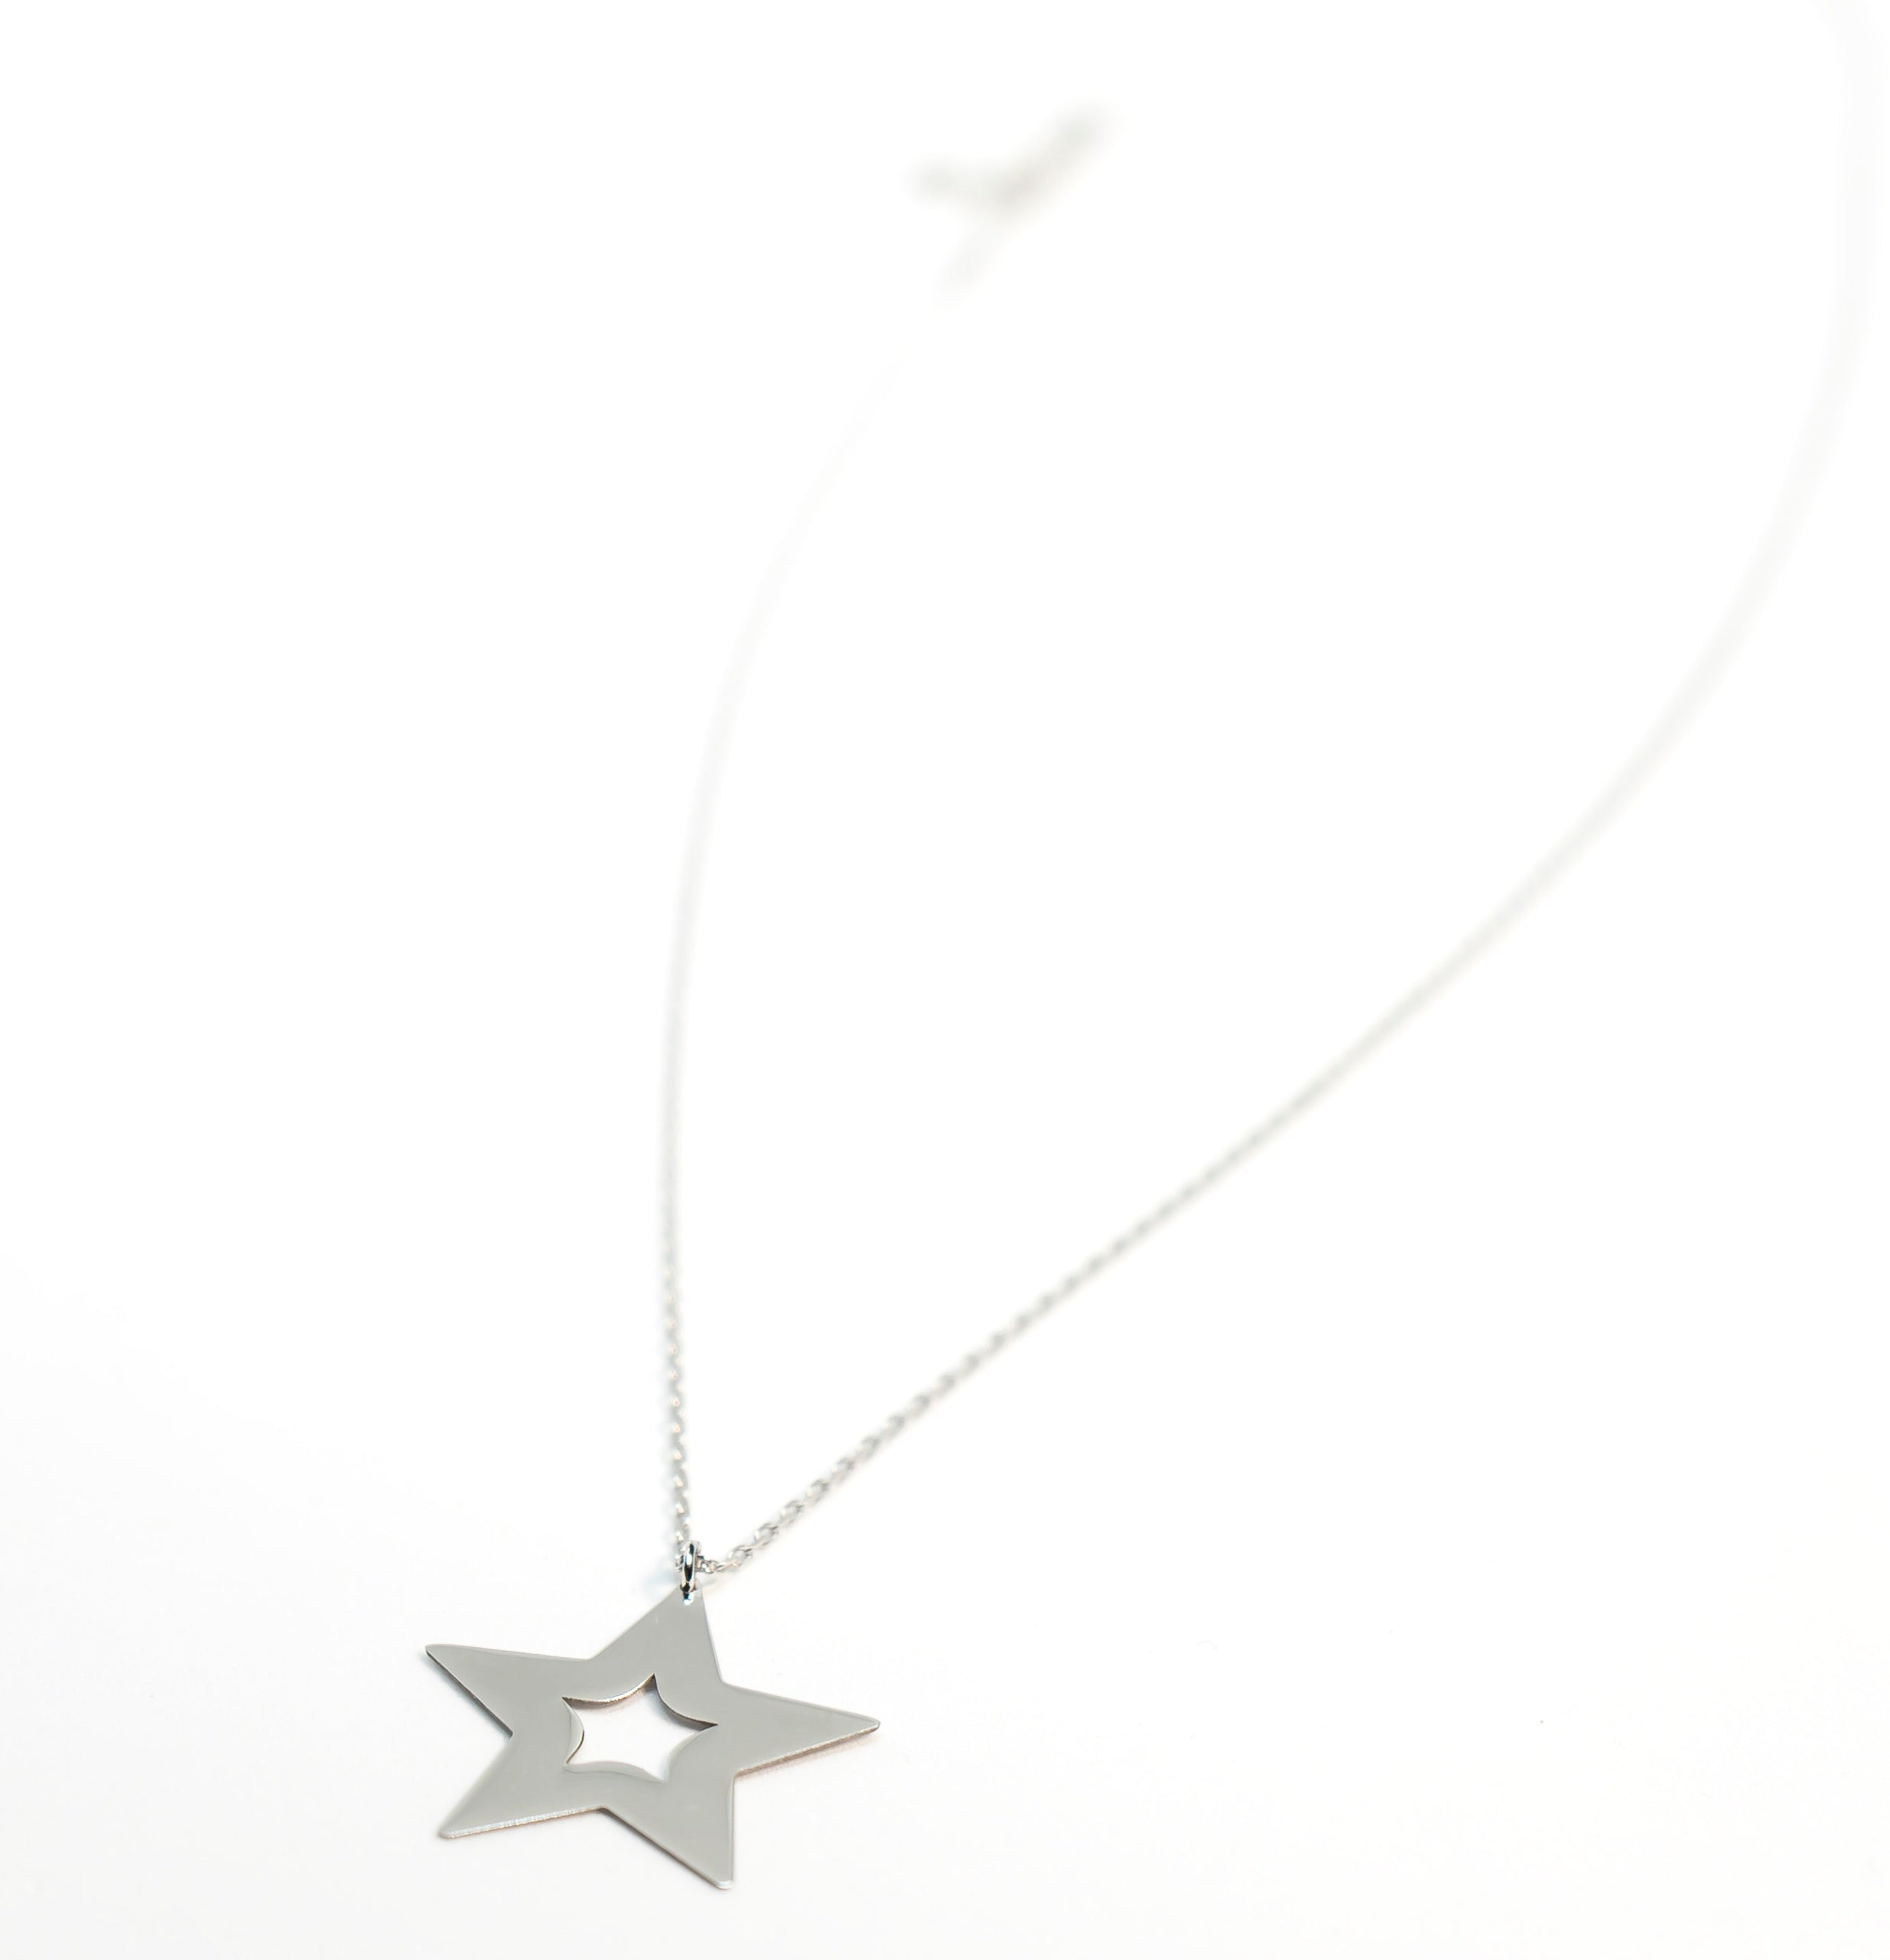 Star of the night necklace the Glared